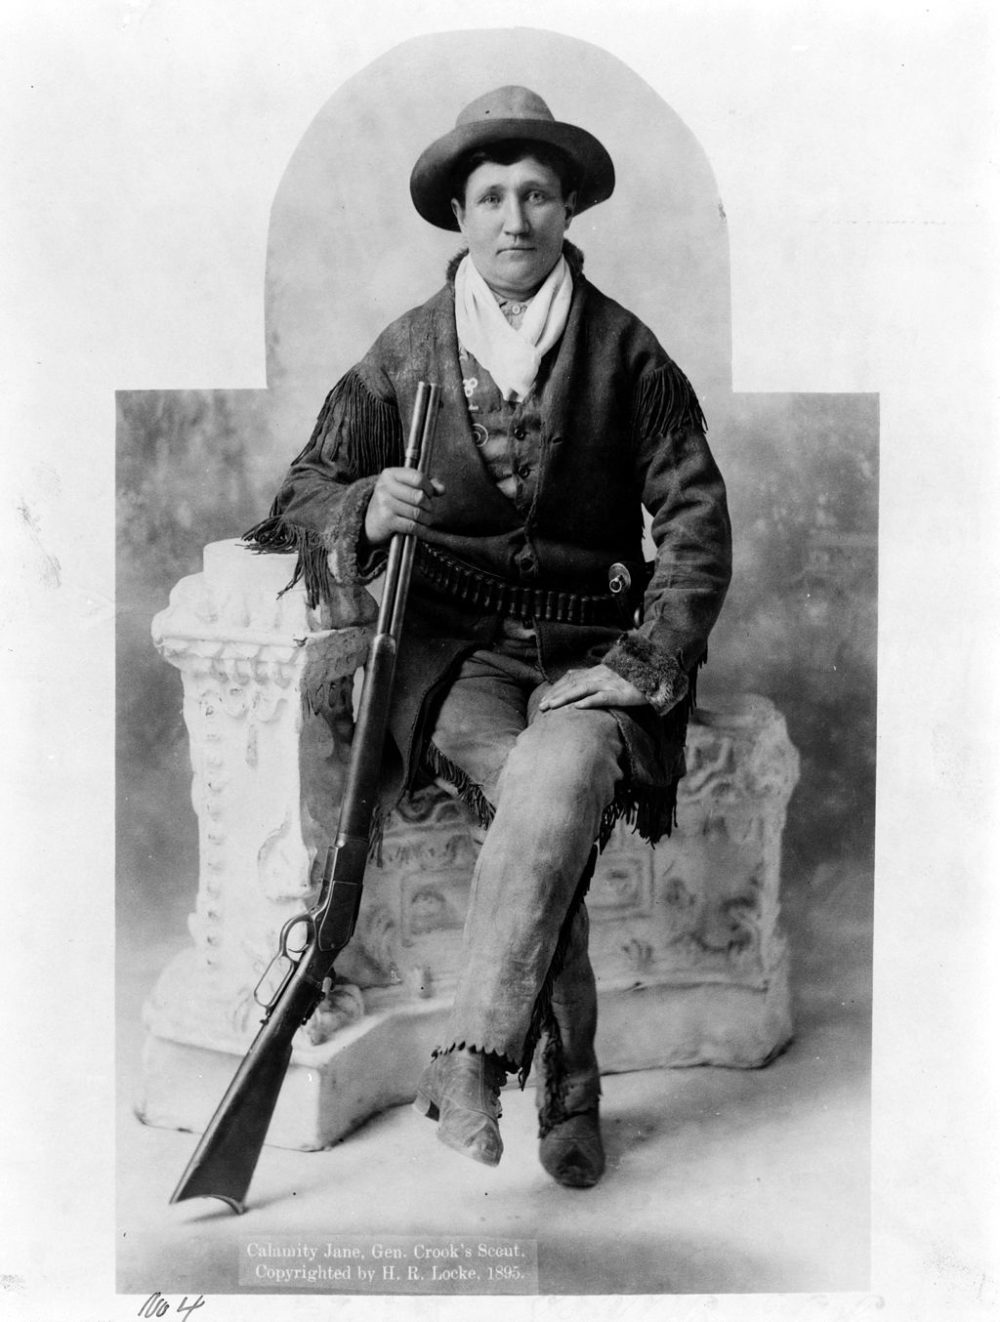 black and white image of calamity jane with shotgun sat on chair